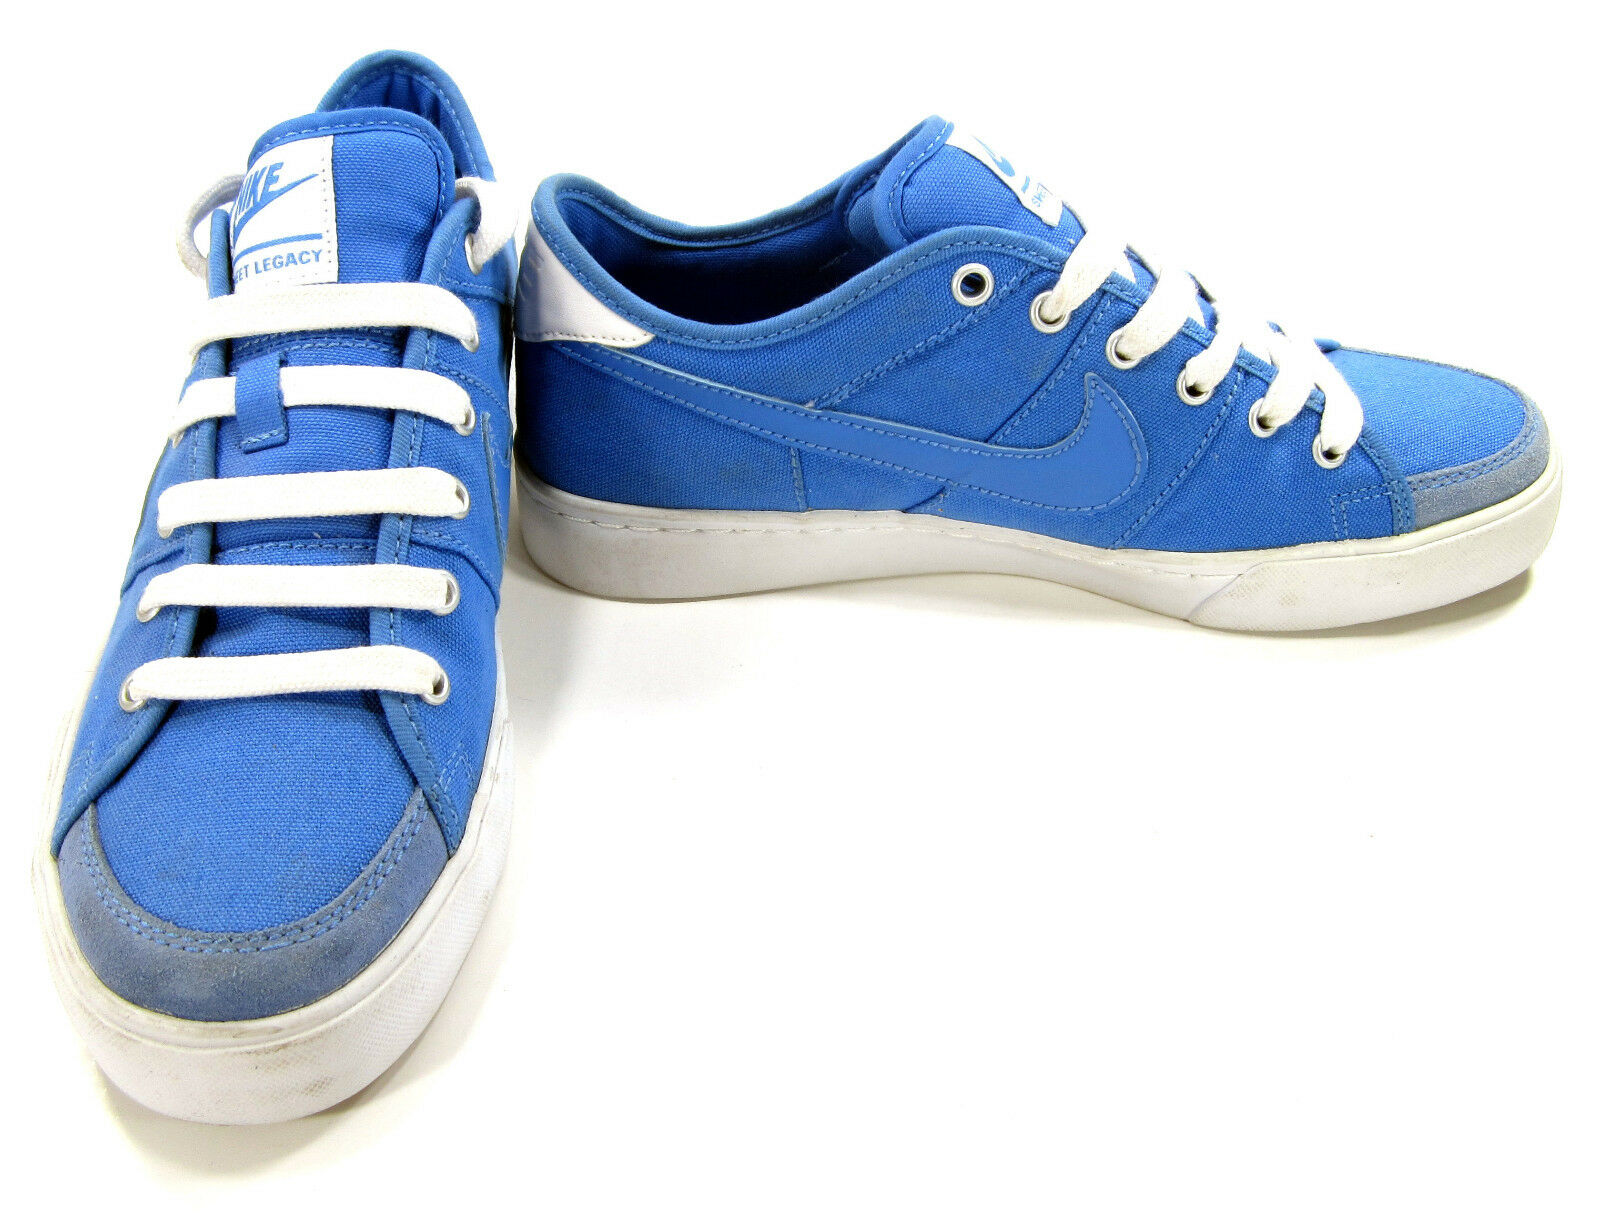 Nike Chaussures Sweet Legacy Lo Vibrant Bleu Sneakers